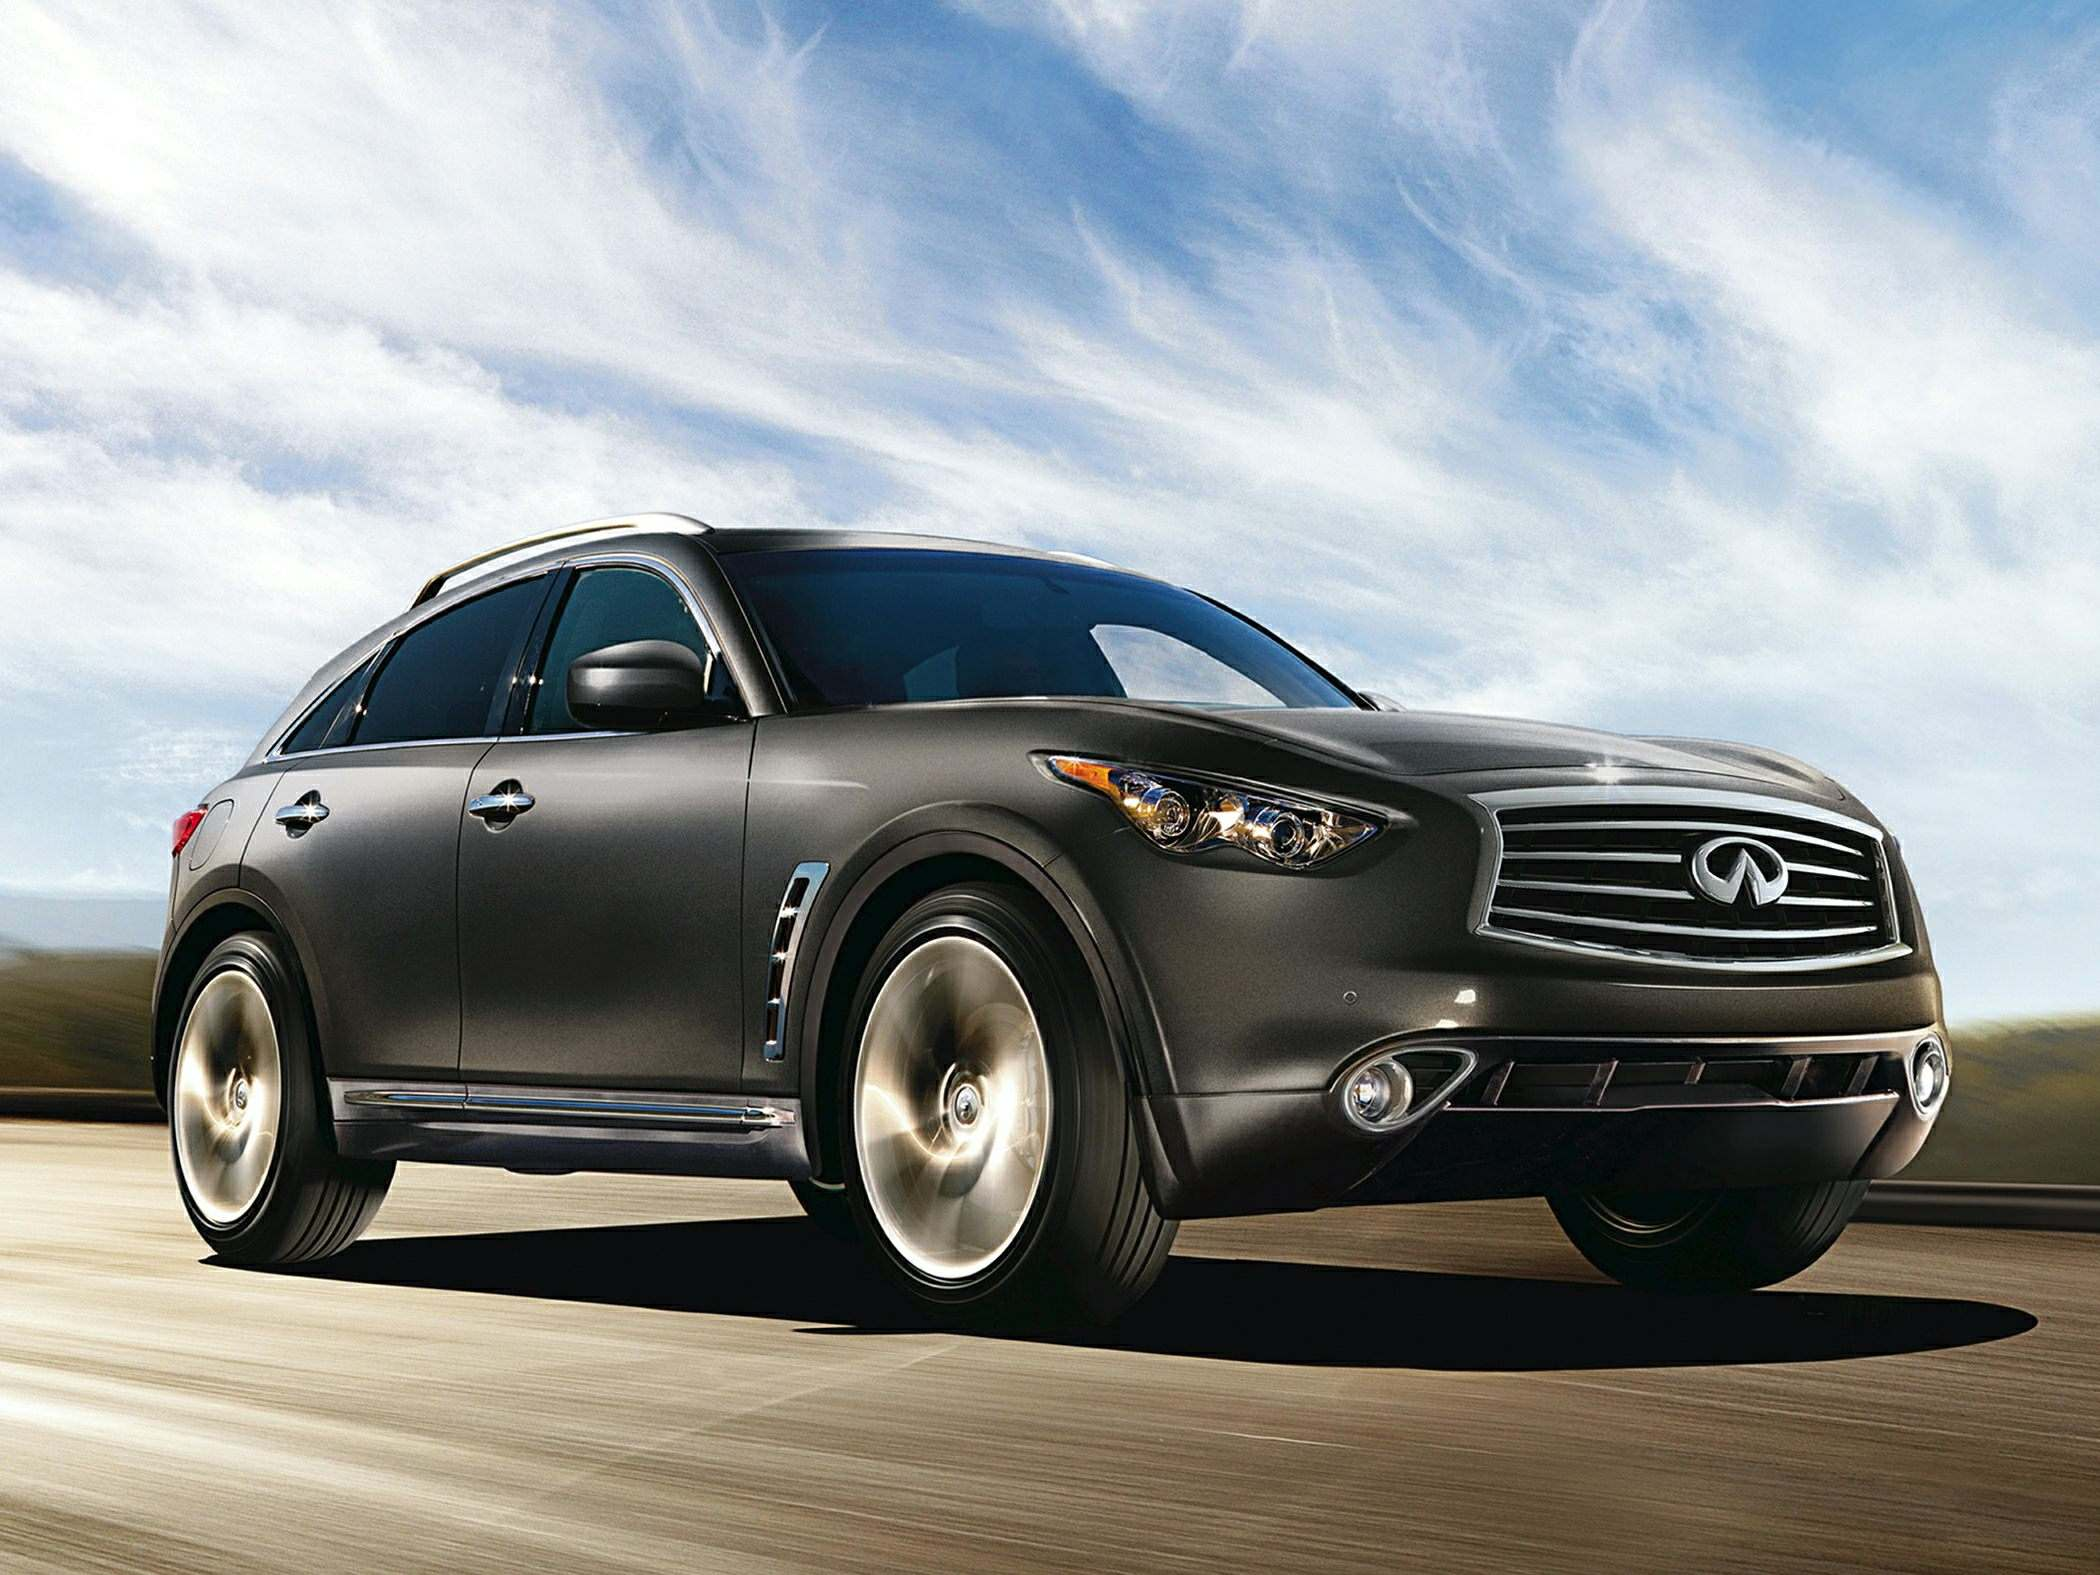 2014-Infiniti-QX70-SUV-Base-4dr-4x2-Photo-2